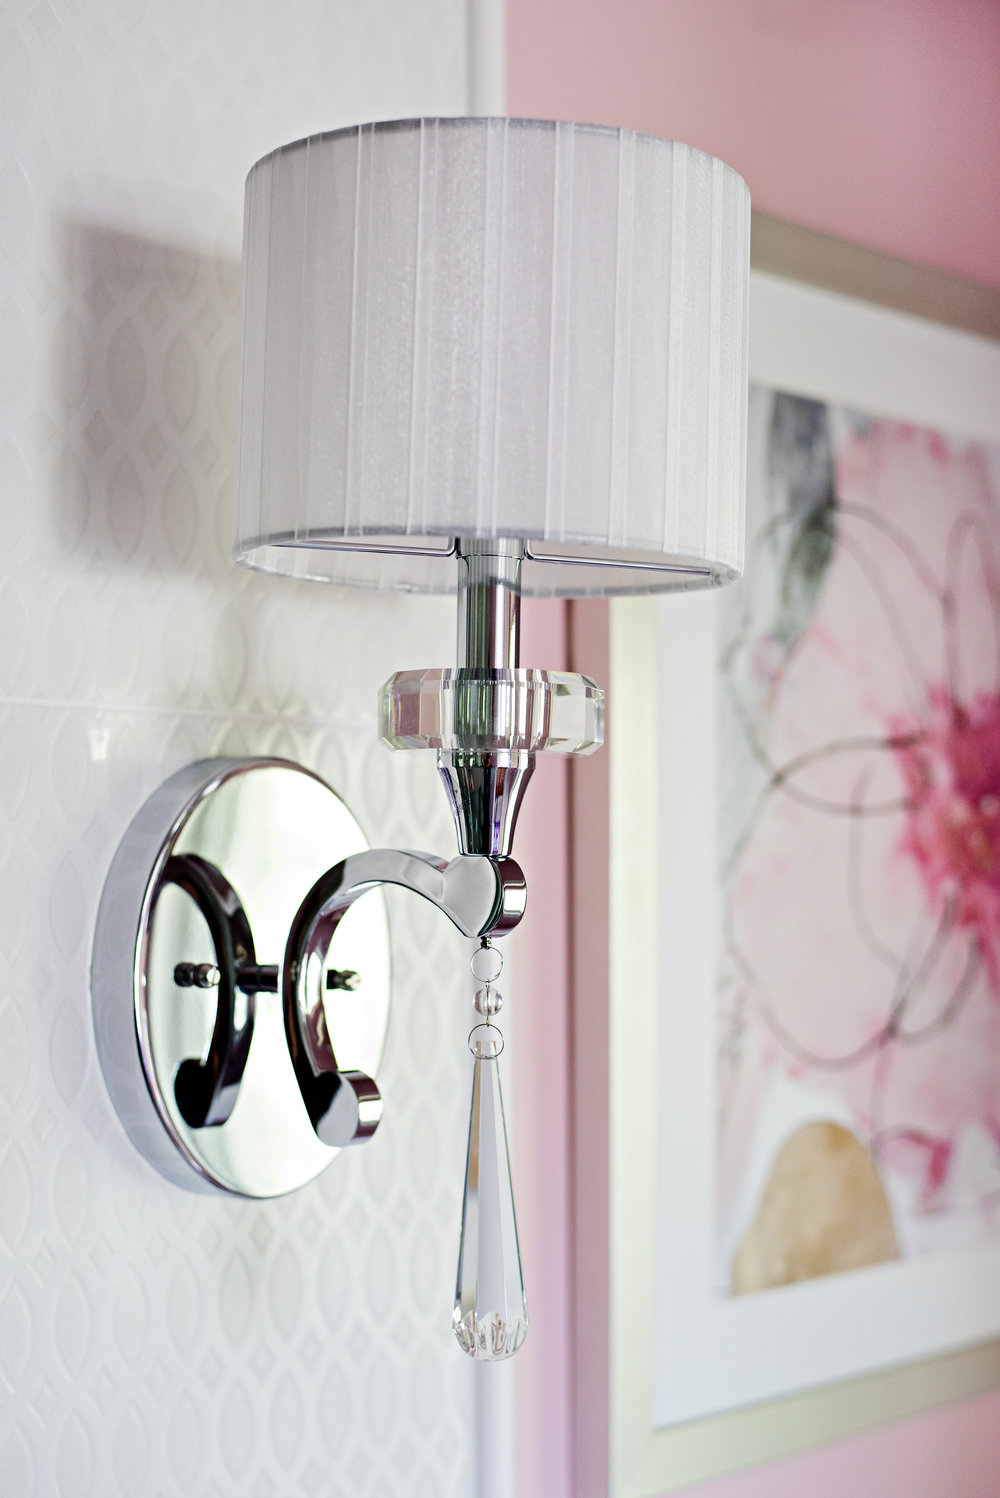 Bathroom Light Sconce 2.jpg